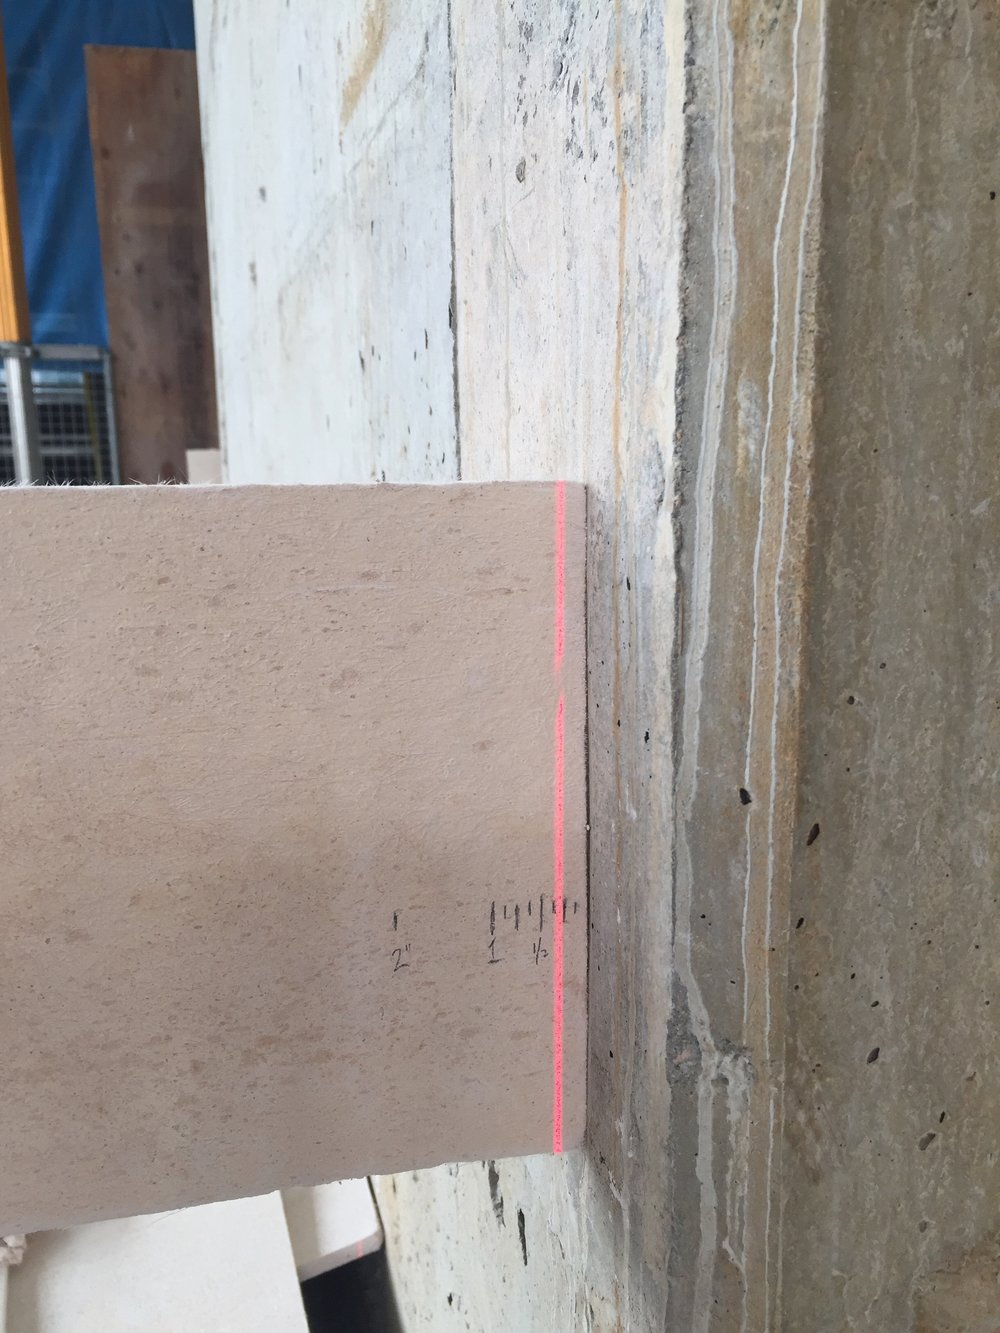 Testing the depth of the existing concrete sub wall.